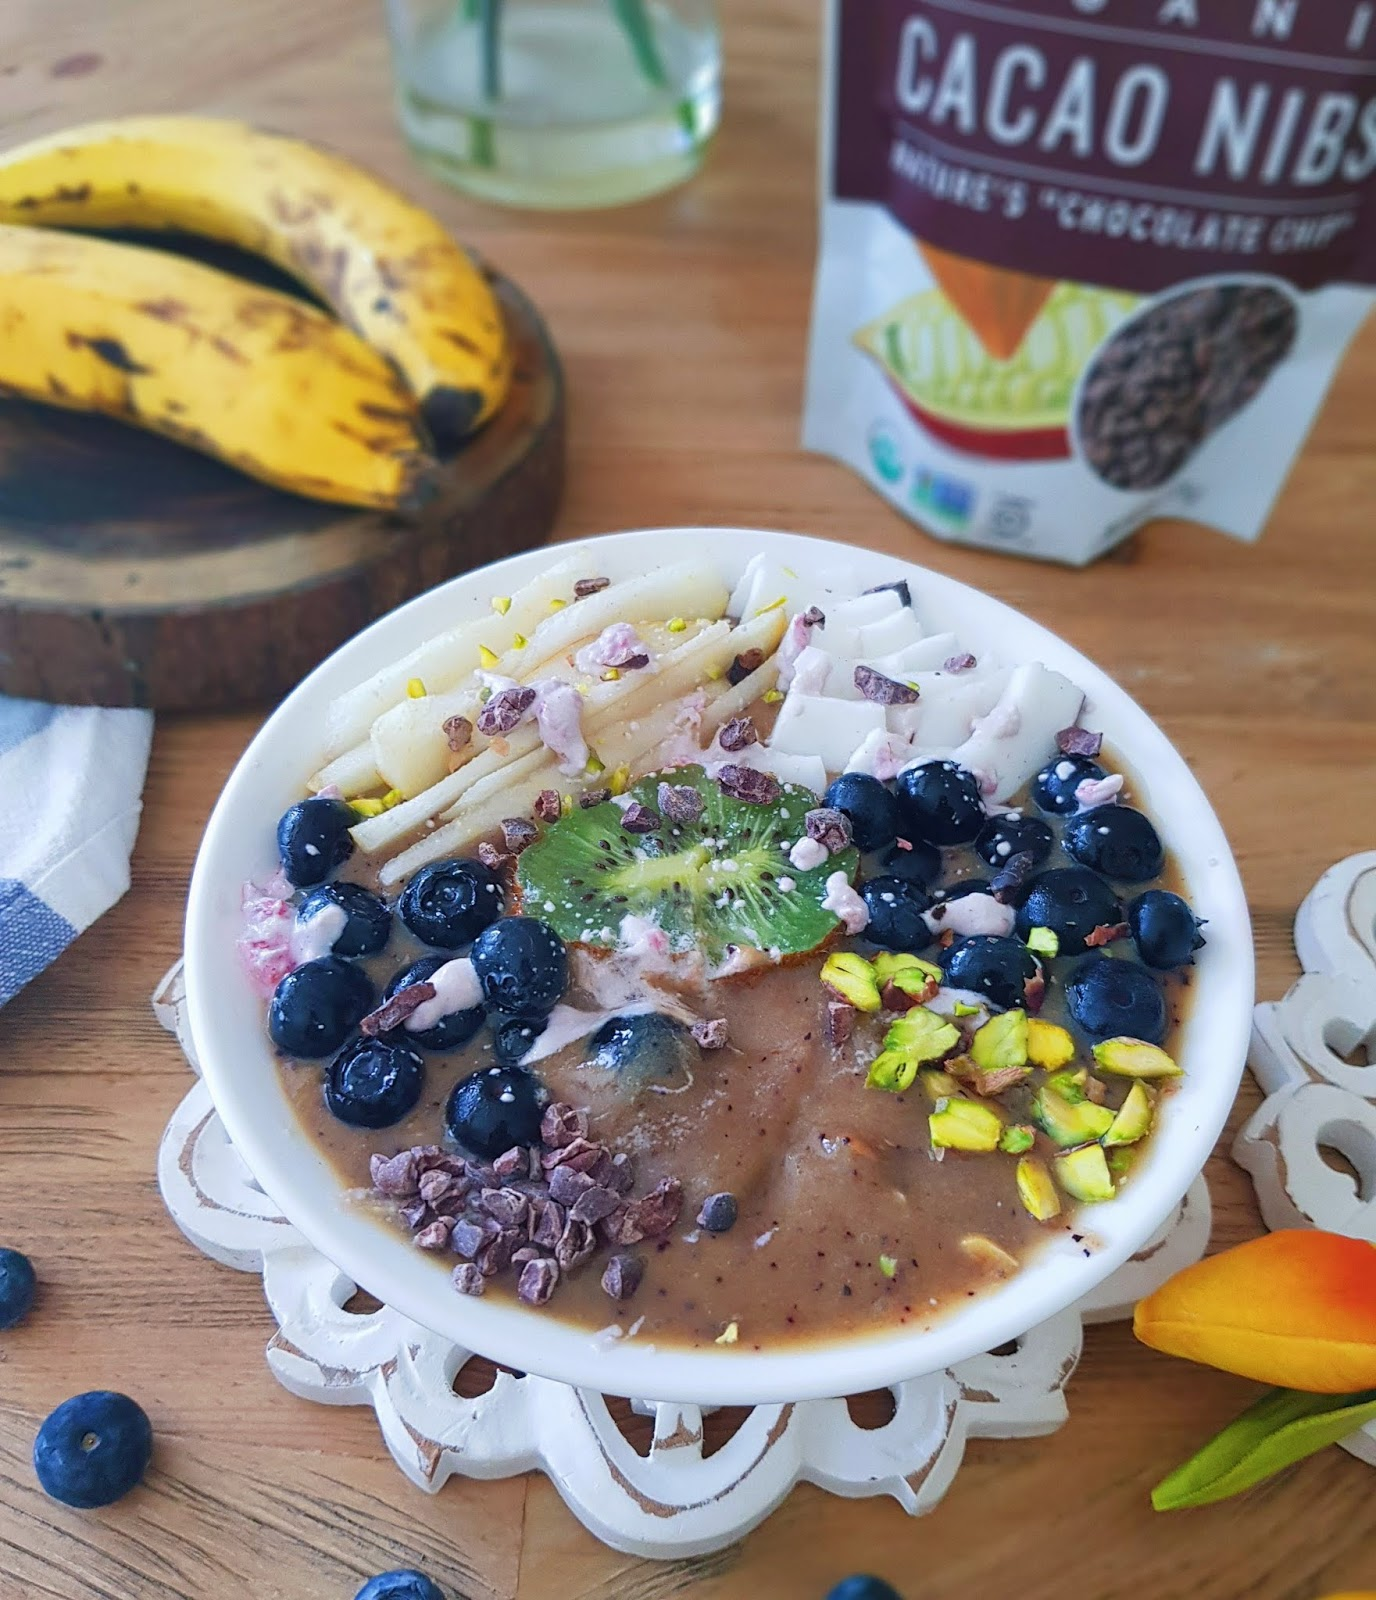 Healthy vegan breakfast - Banana and Peach Smoothie Bowl with Cacao Nibs Benefits - easy breakfast recipe